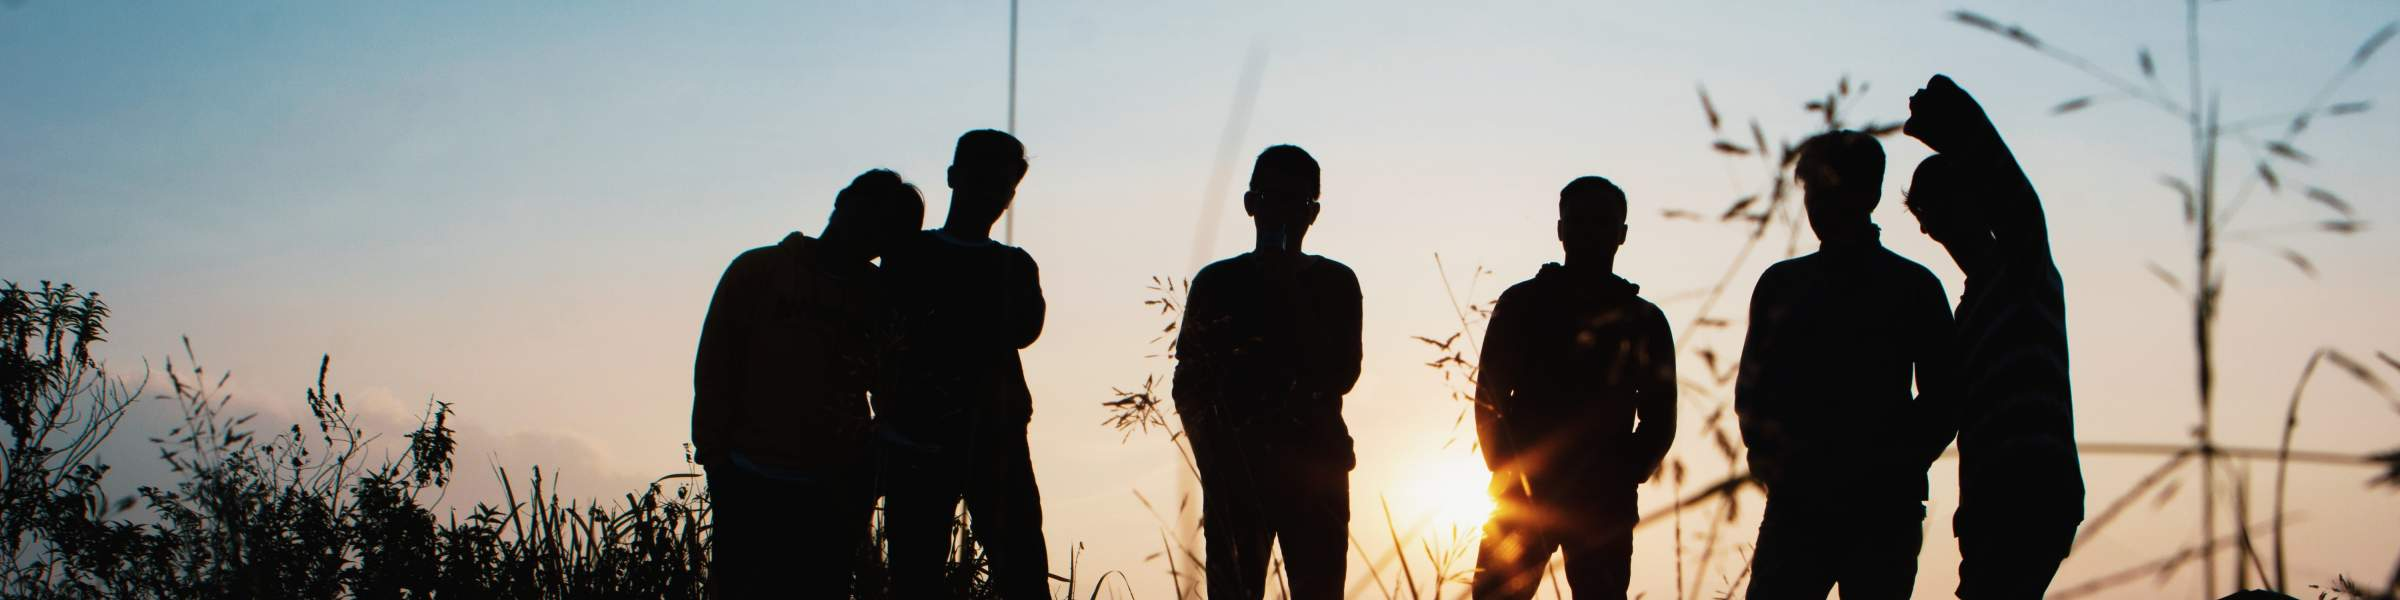 Young people with sunset